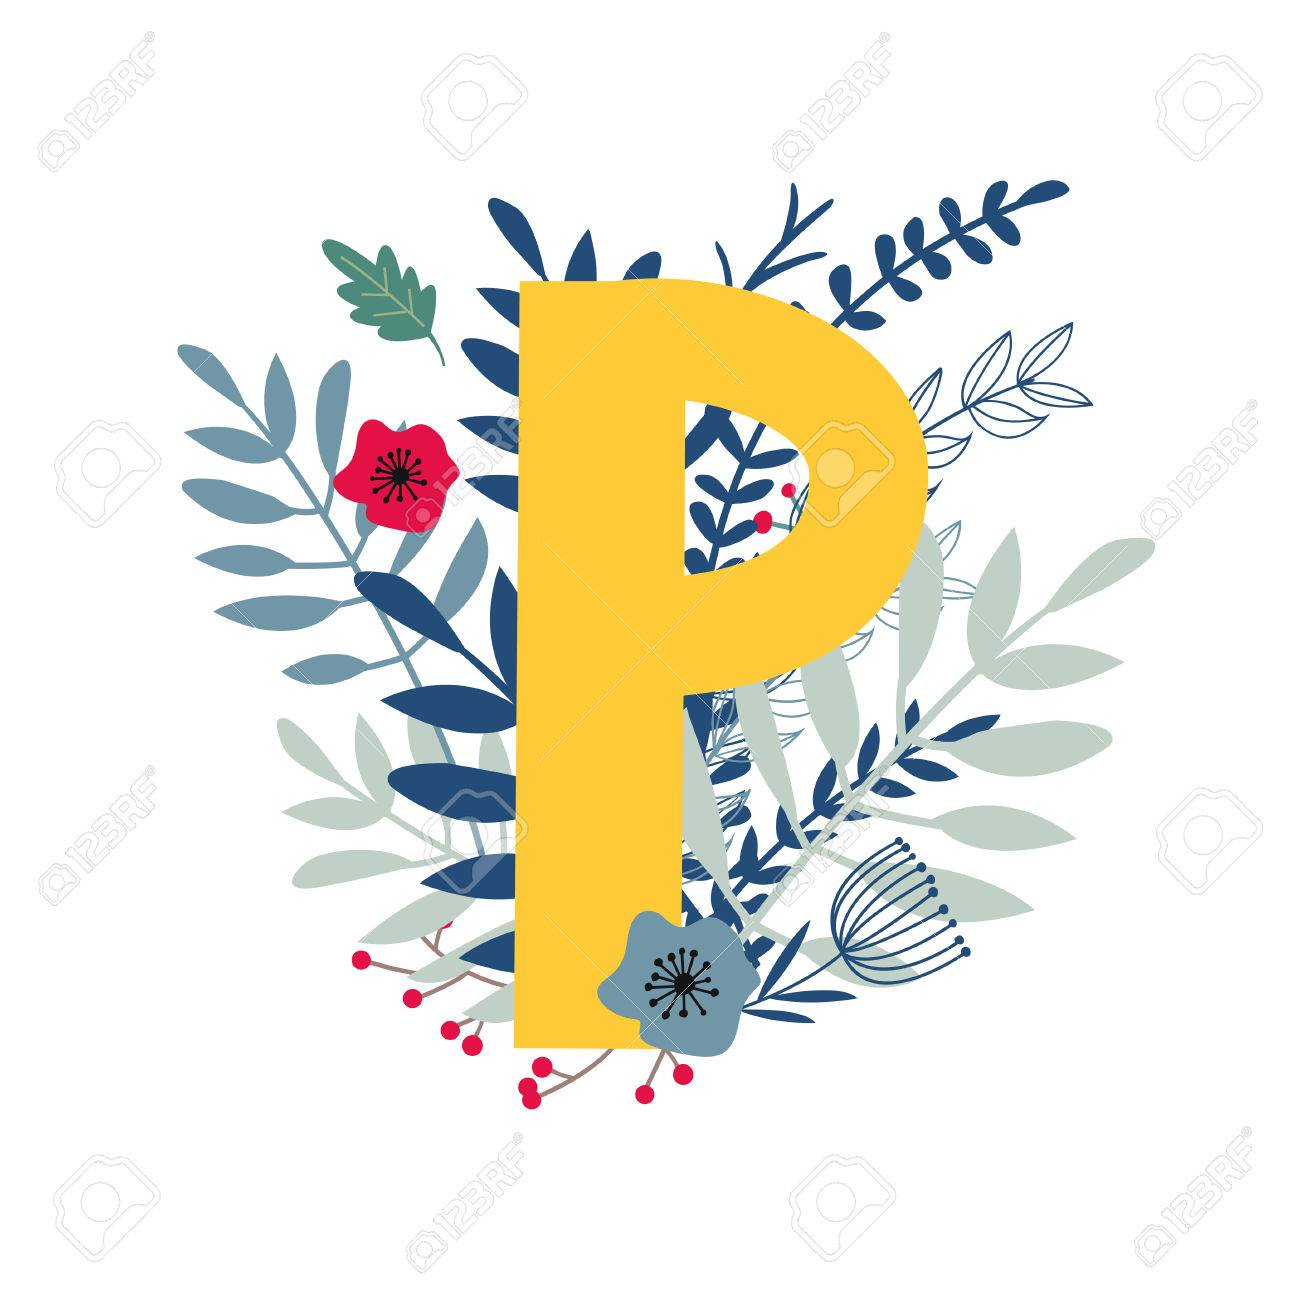 alphabet letter p in floral design with flowers and plants vector colorful abc element